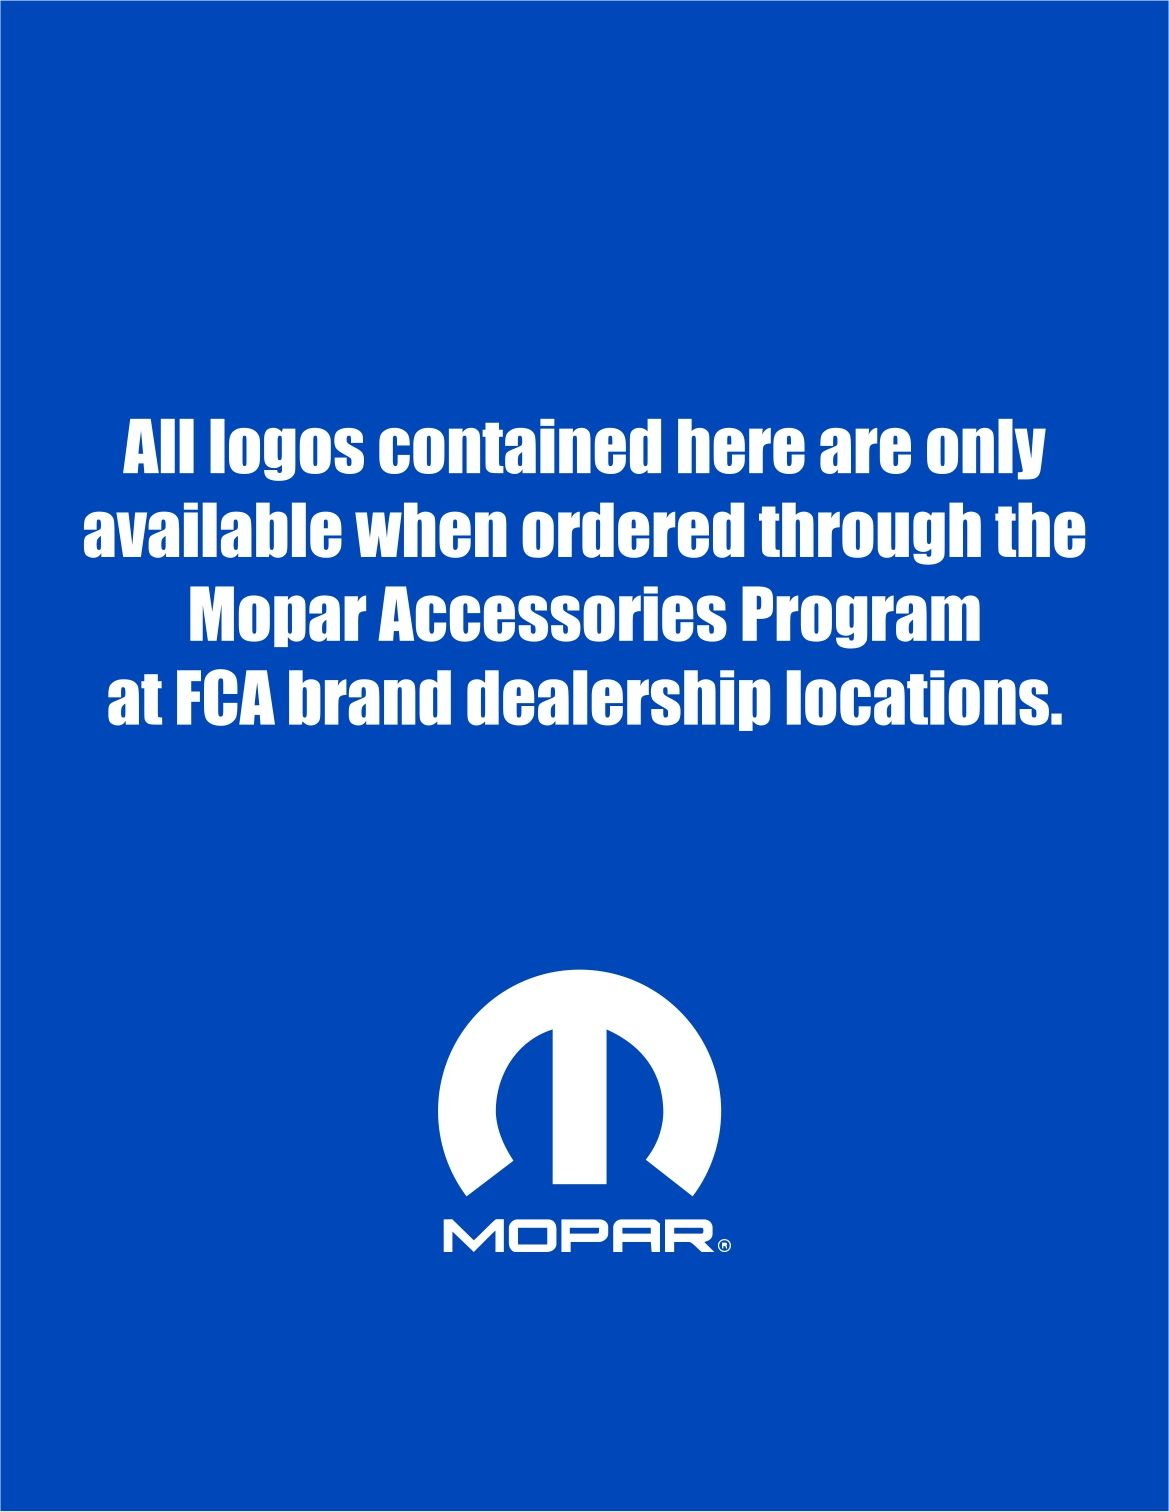 Mopar Program Logos